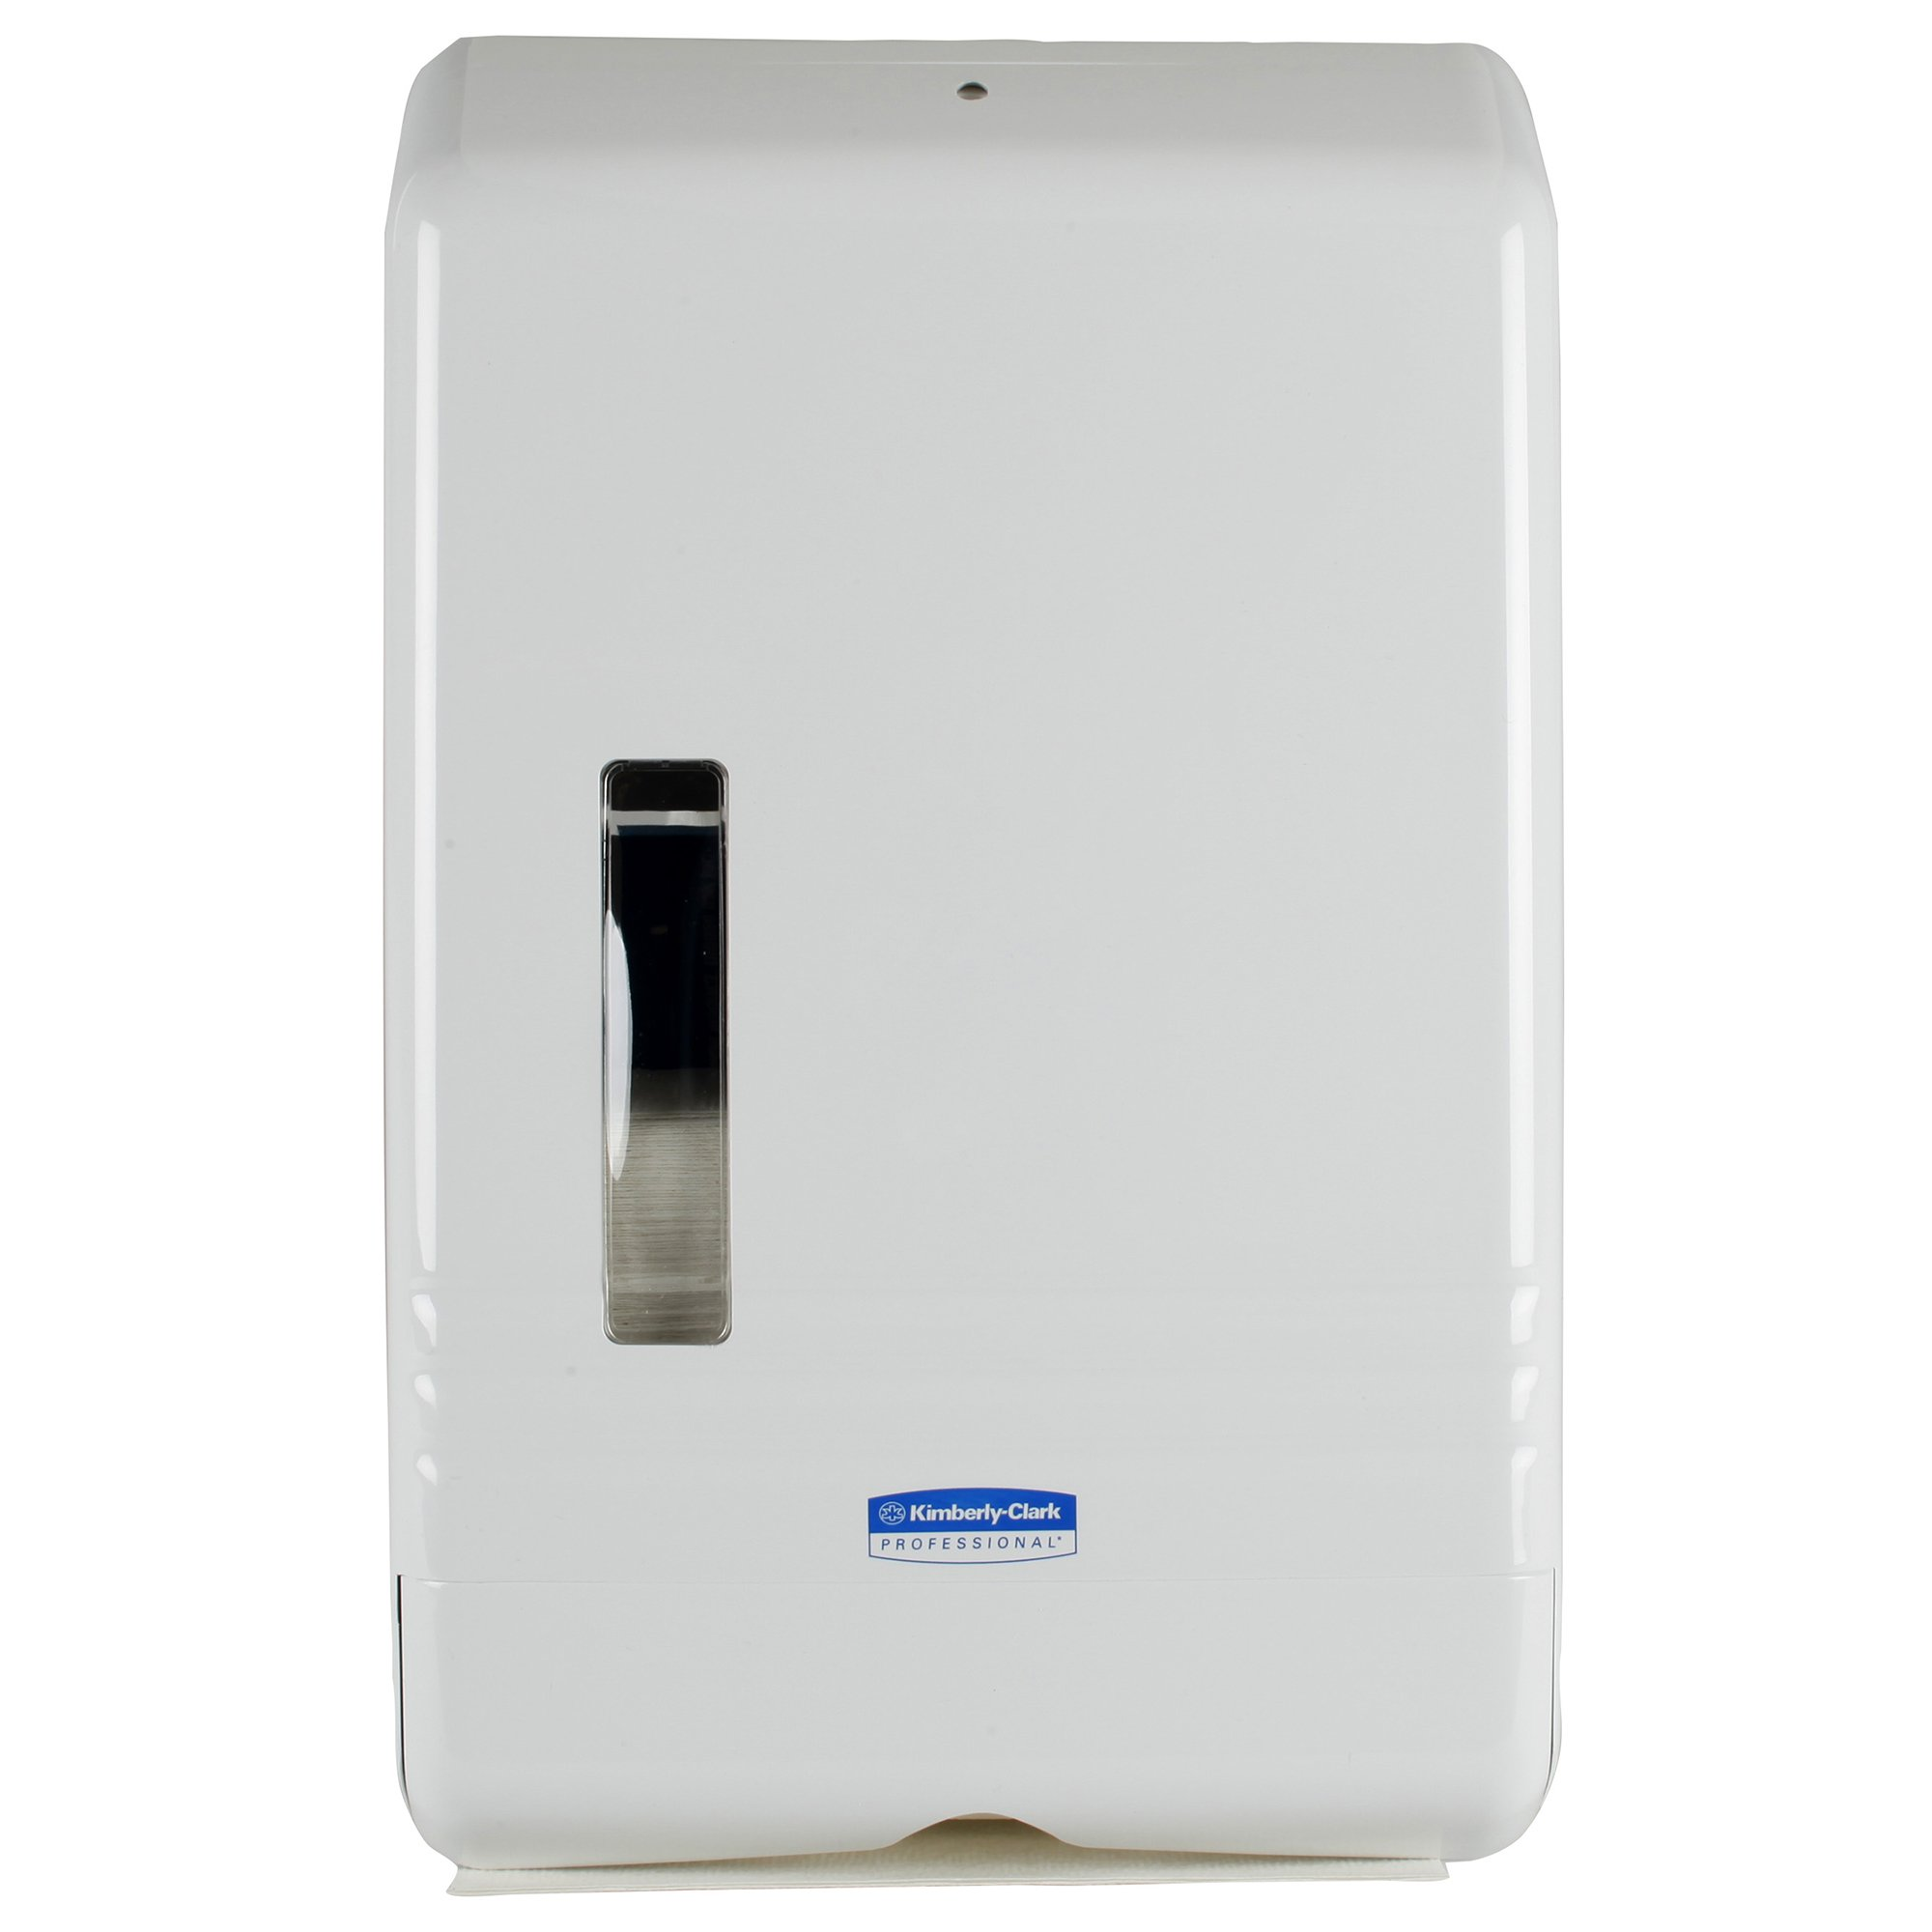 SlimFold Folded Paper Towel Dispenser (06904), Compact, One-at-a-Time Manual Dispensing, White